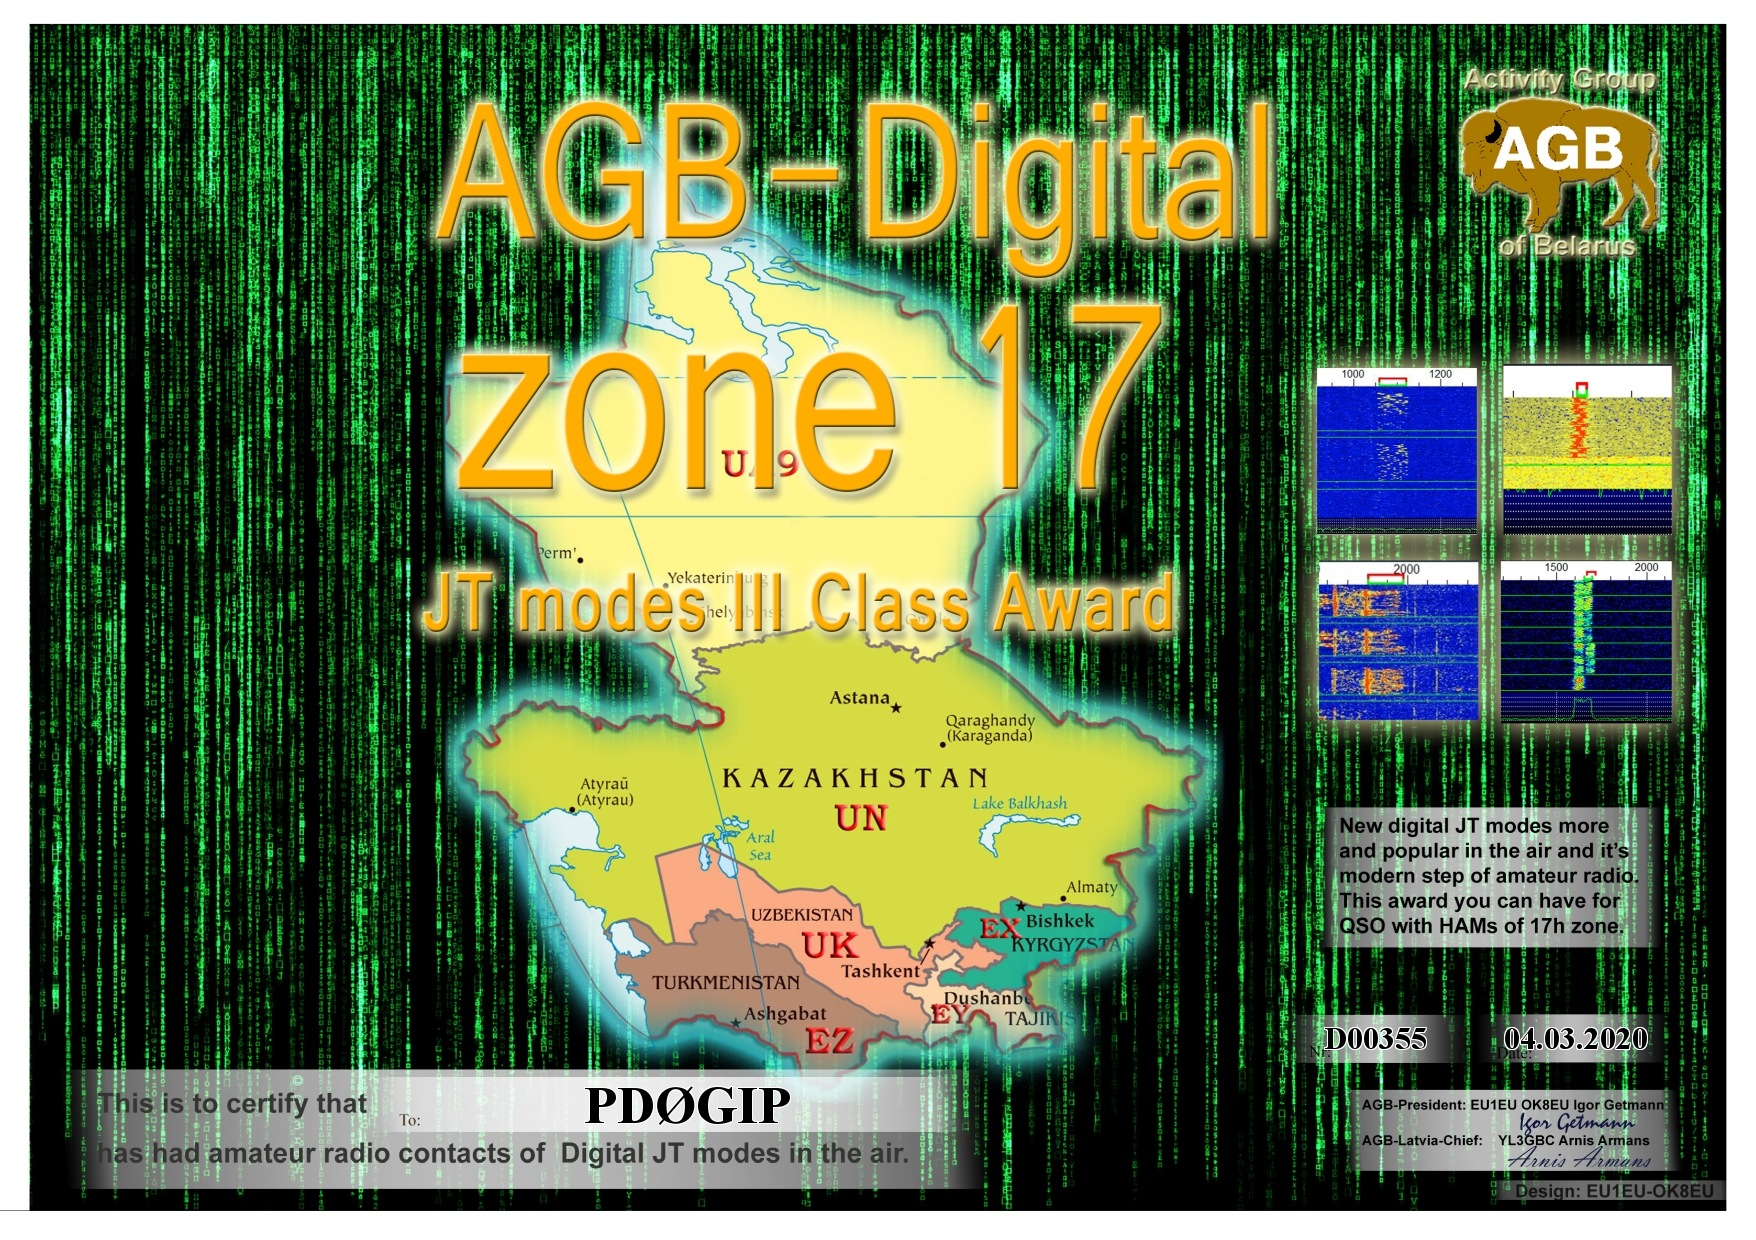 PD0GIP ZONE17 BASIC III AGB